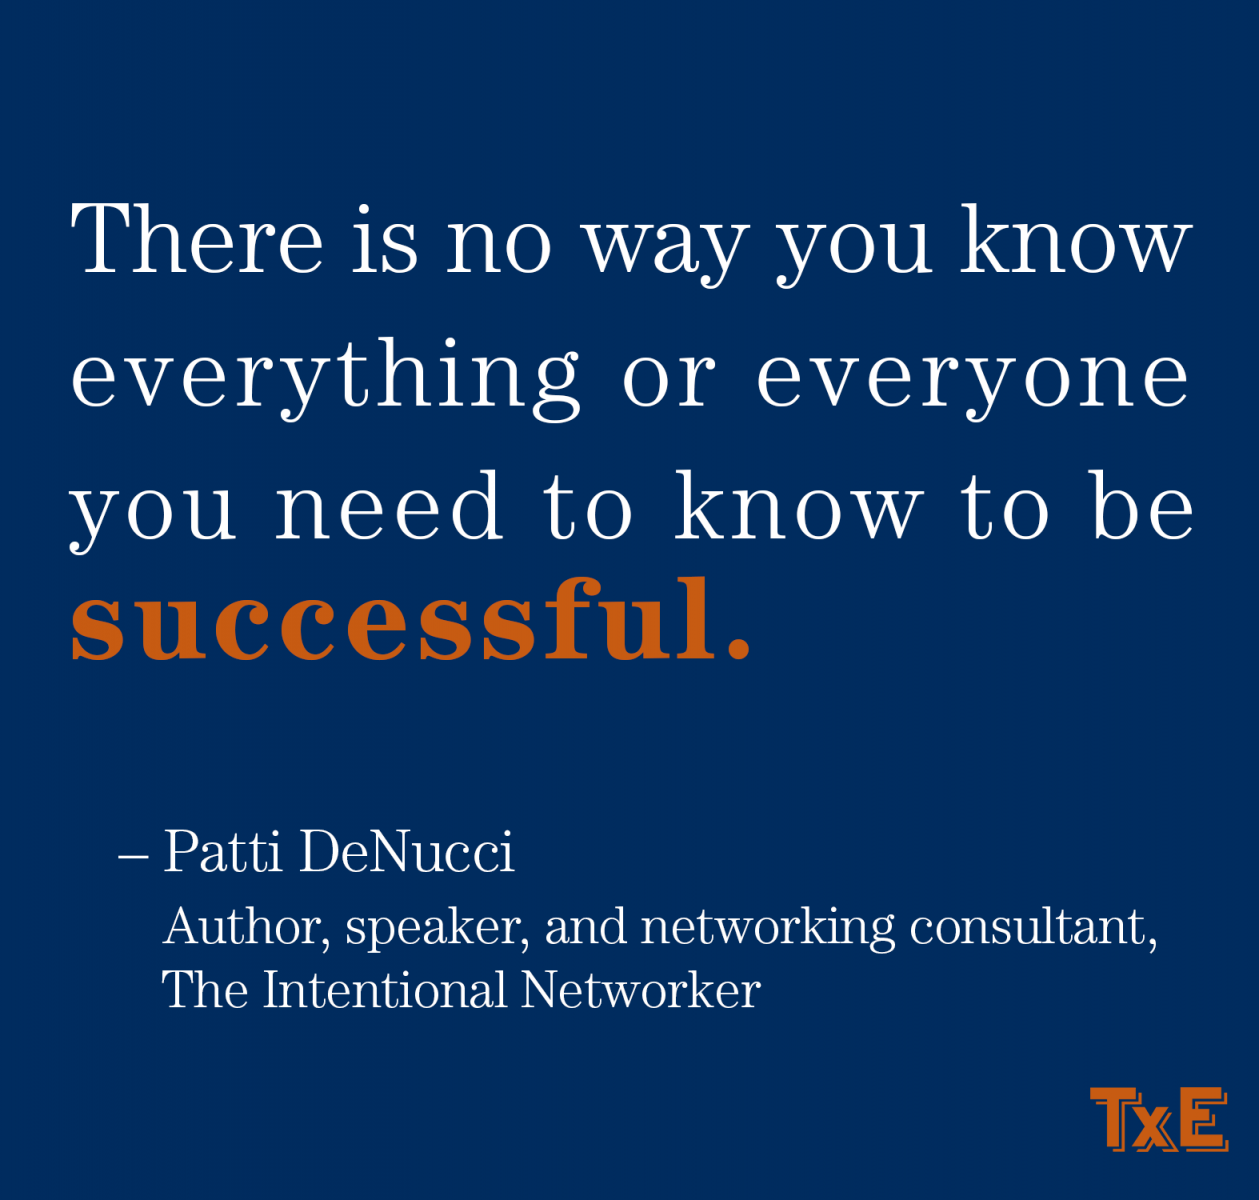 There is no way you know everything you need to be successful, Patti DeNucci